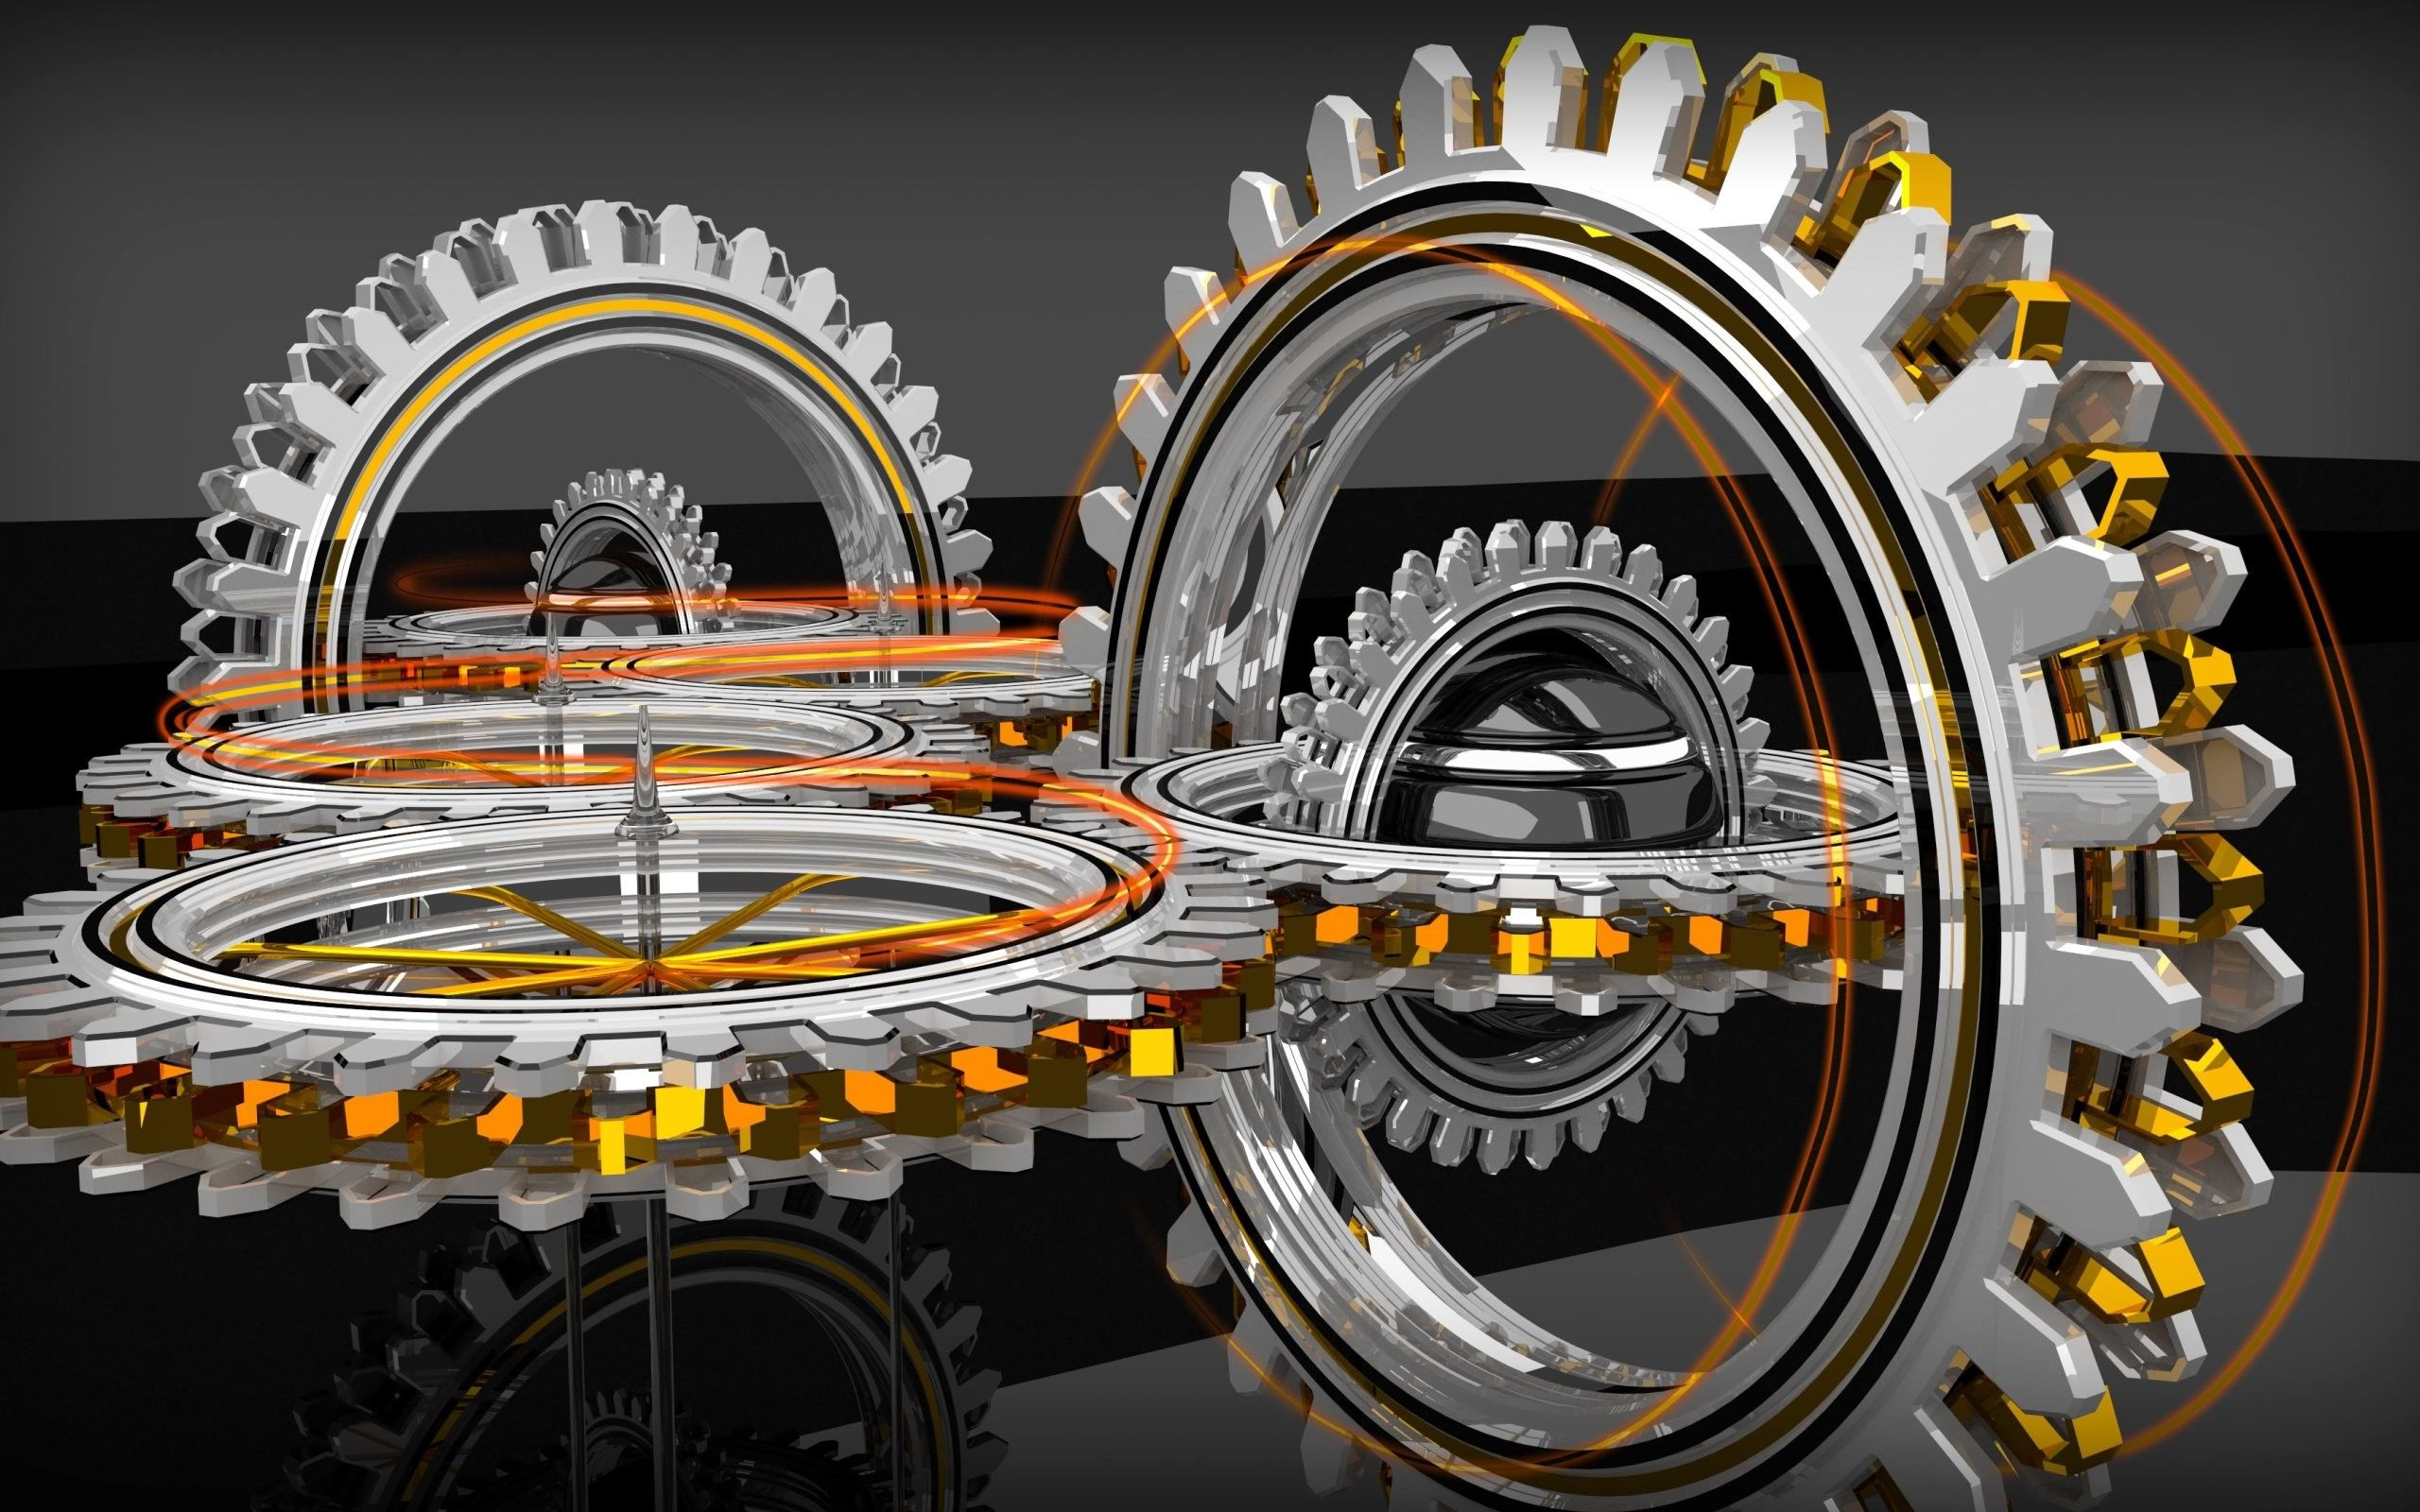 2560x1600 4k Hd Wallpaper 3 Abstract 3d Concentric Gears Mechanical Engineering Wallpaper Mechanic